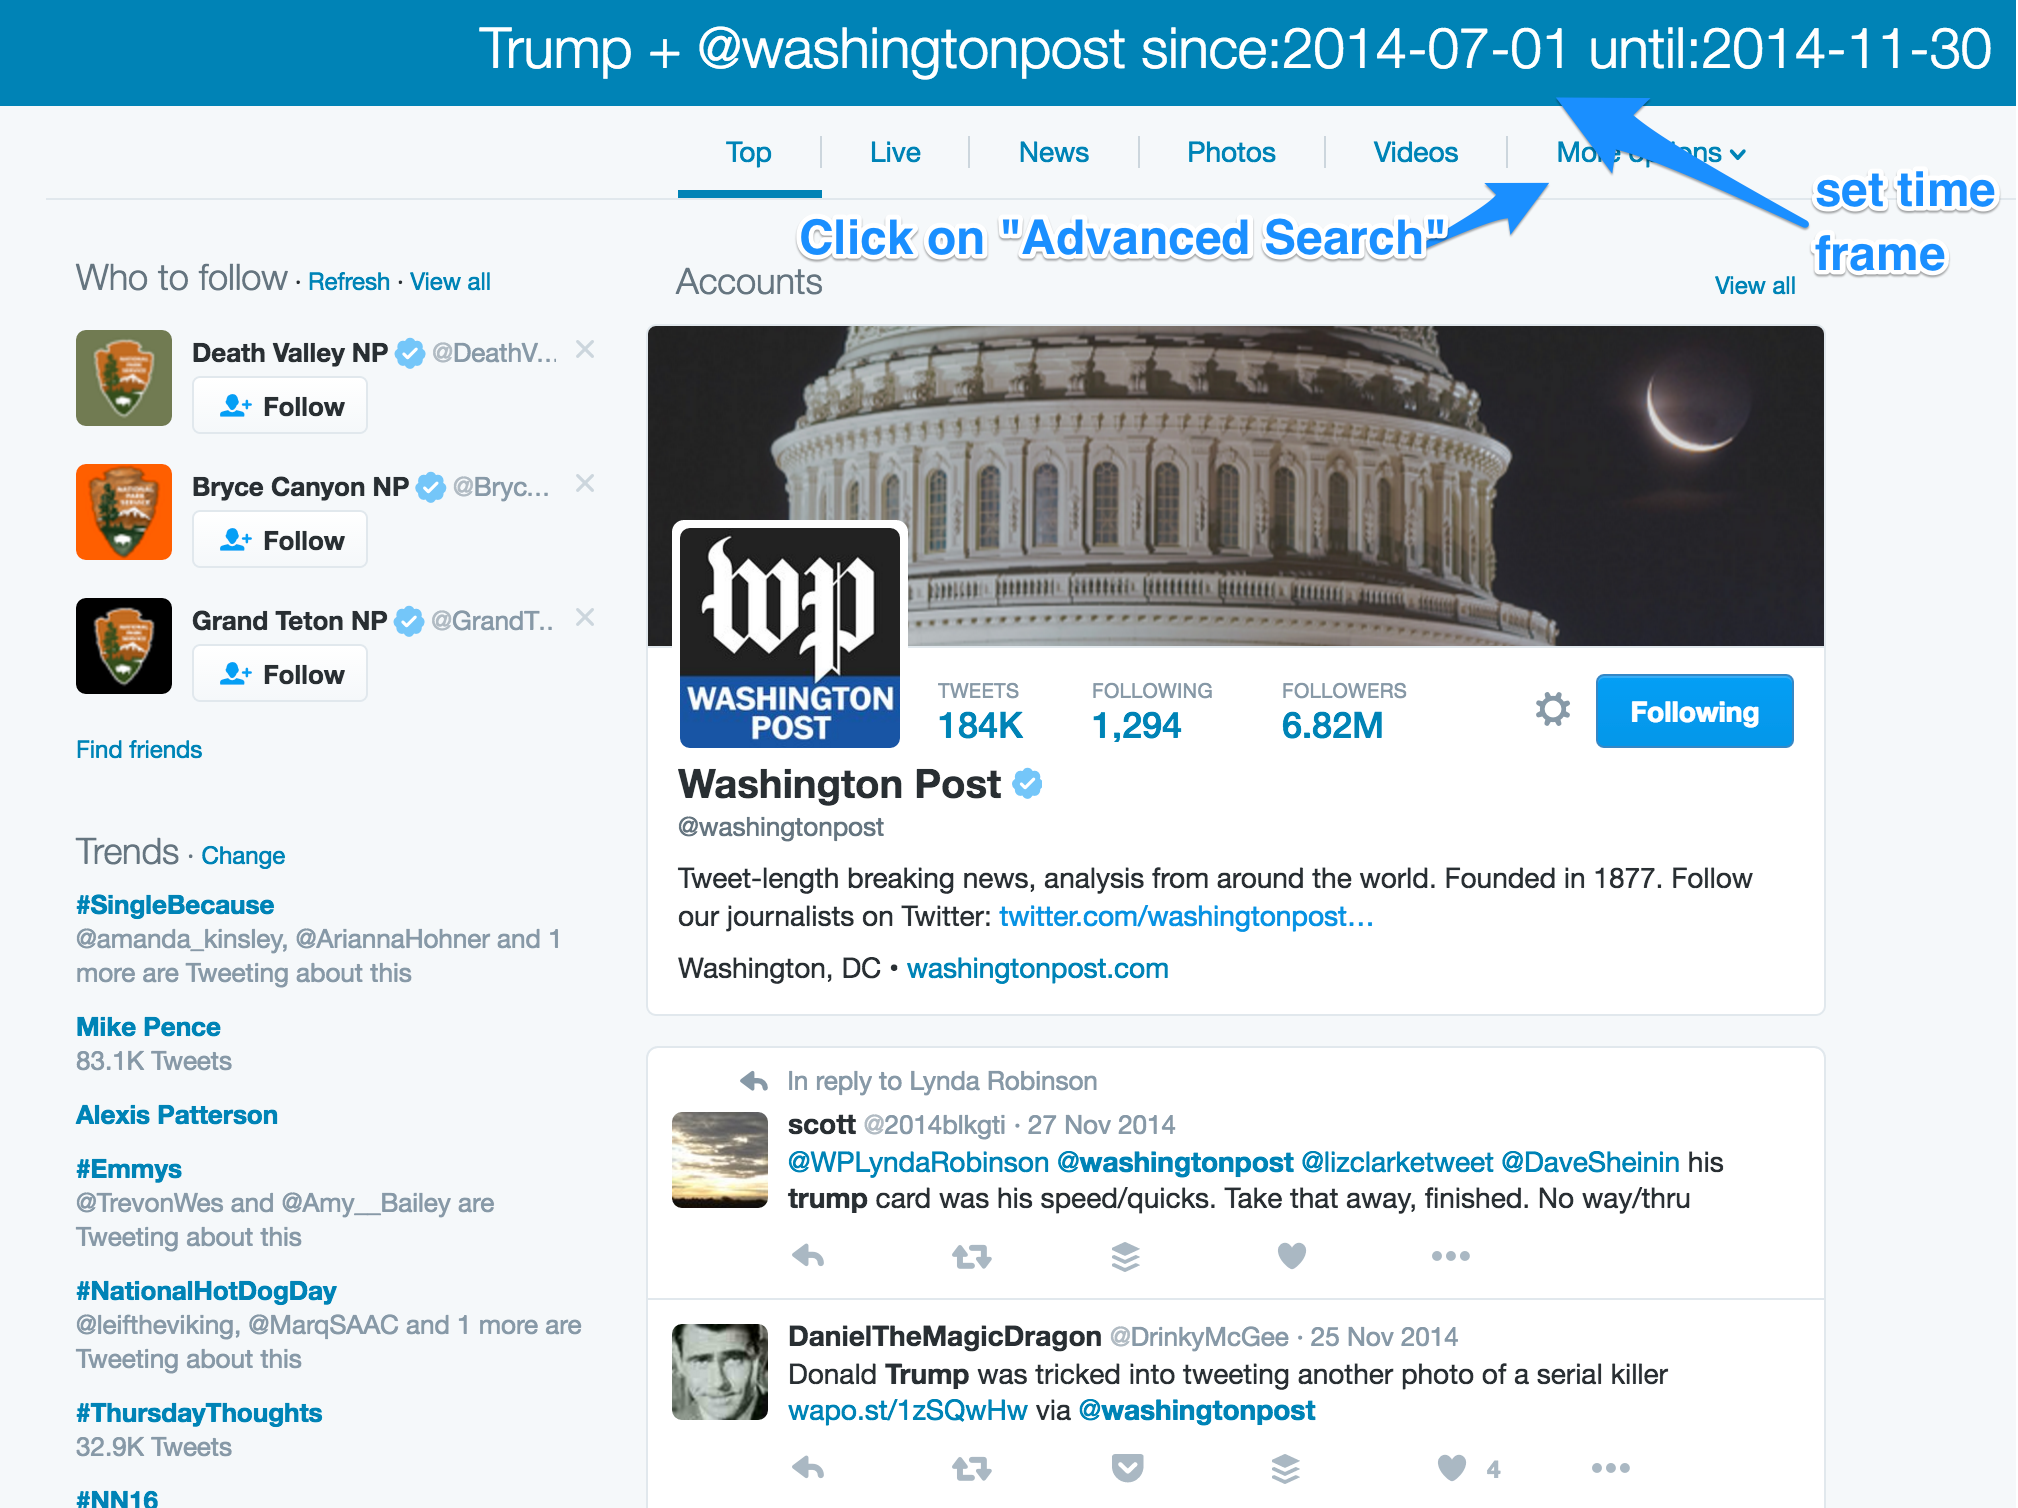 News_about_Trump____washingtonpost_since_2014-07-01_until_2014-11-30_on_Twitter